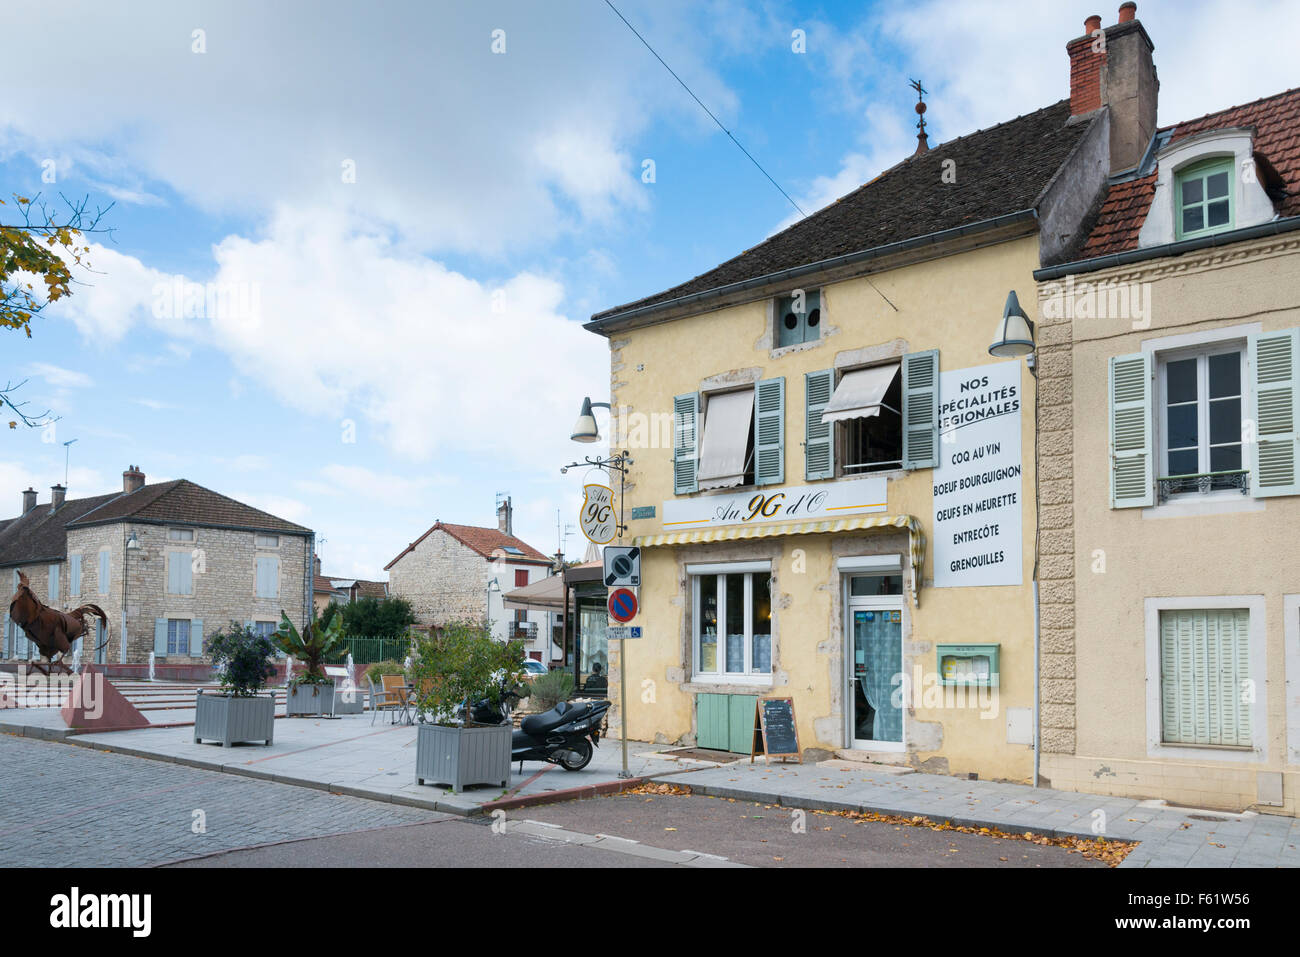 Shops and buildings in a street scene in the town of Chagny France - Stock Image